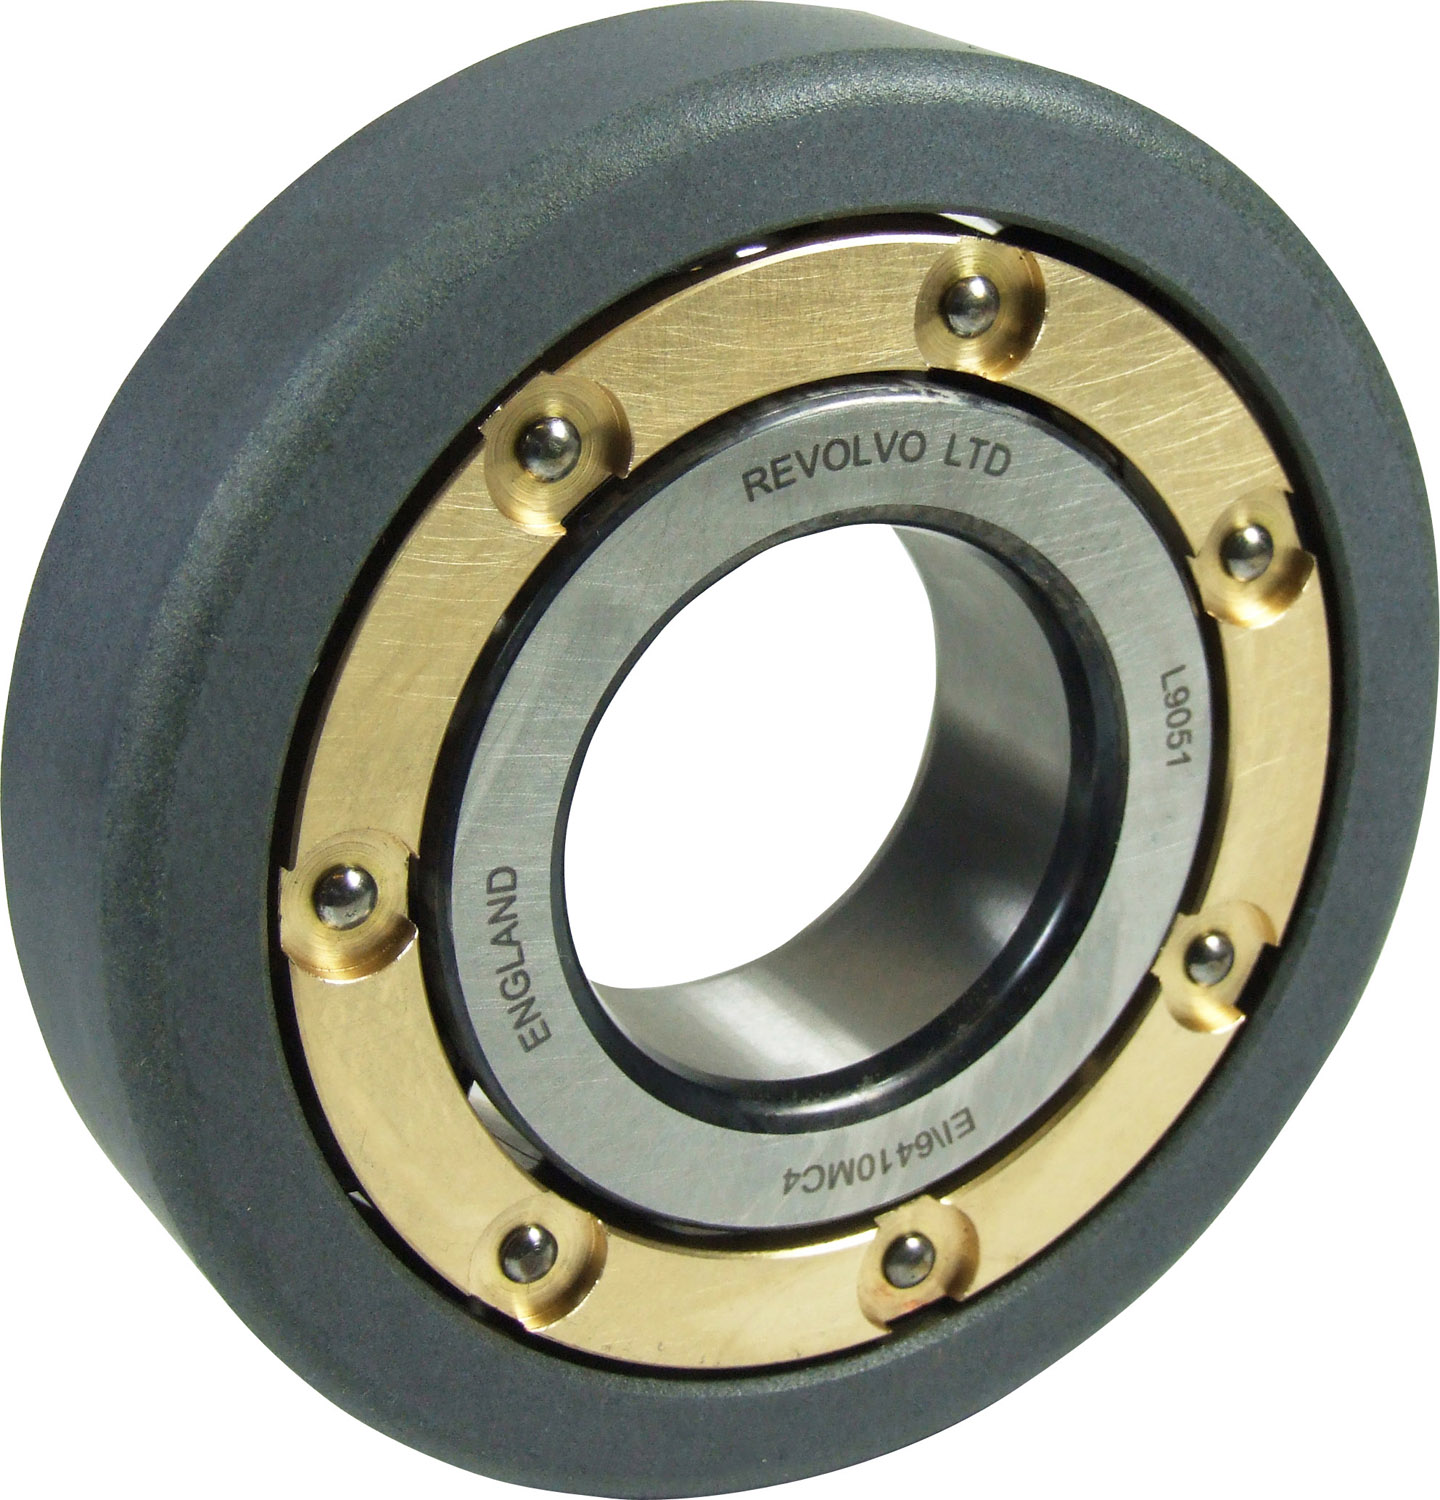 Revolvo insulated bearing technology gains market share for Electric motor bearings suppliers